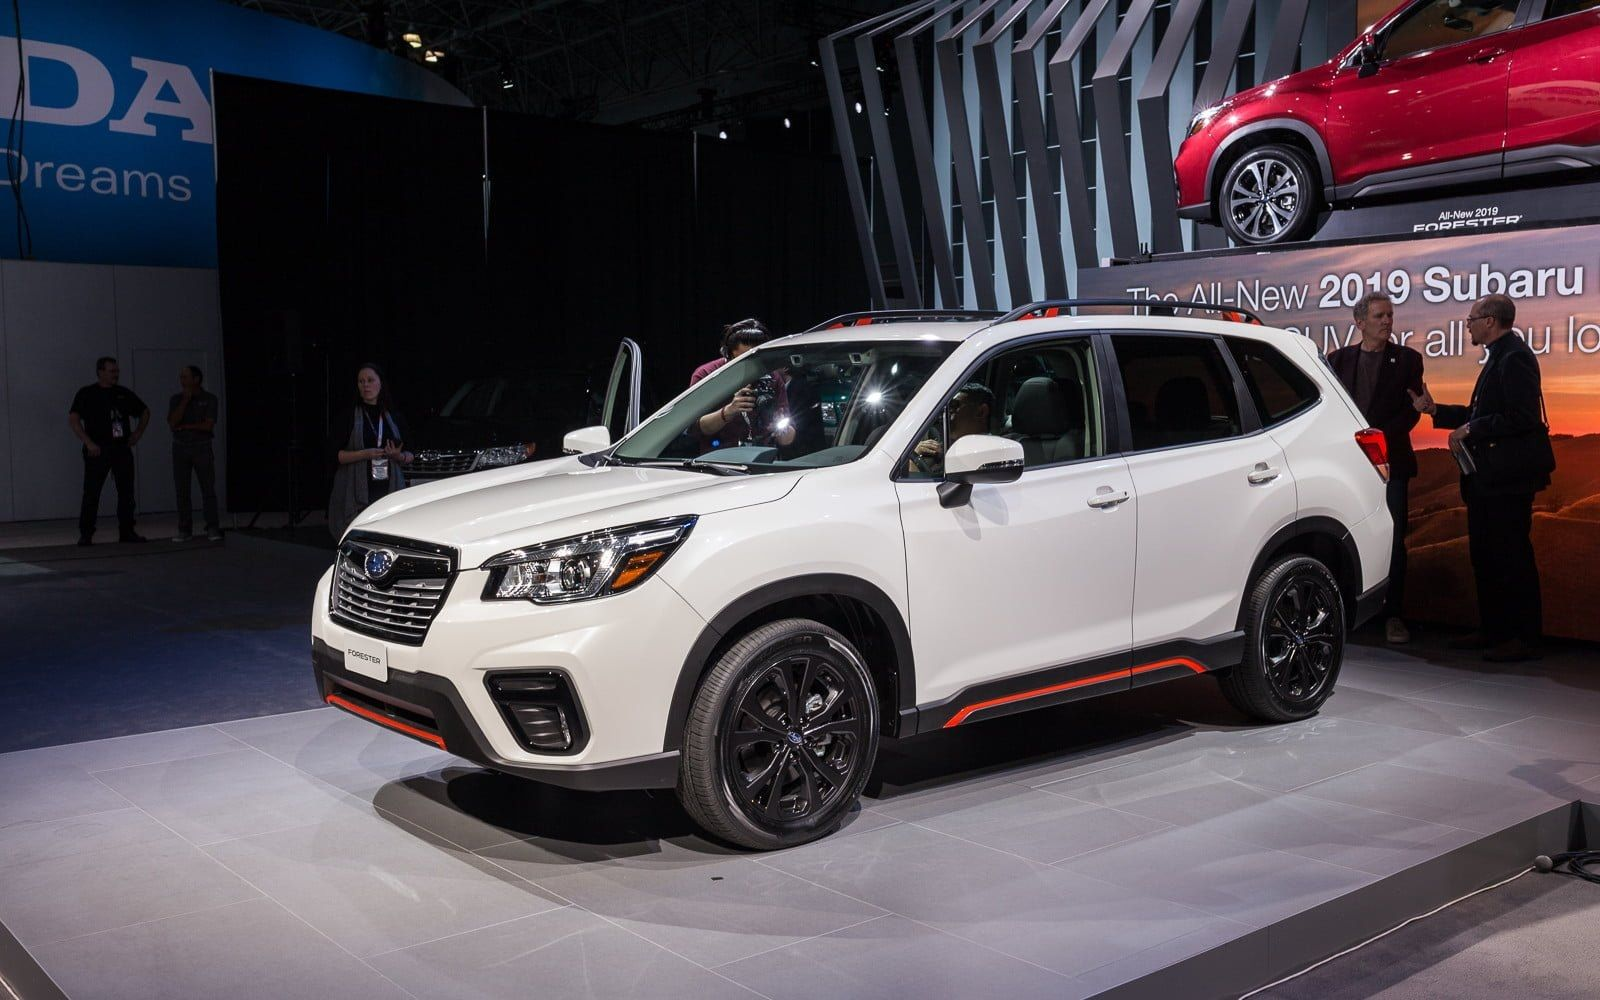 2019 Subaru Forester Review, specs and Release date in